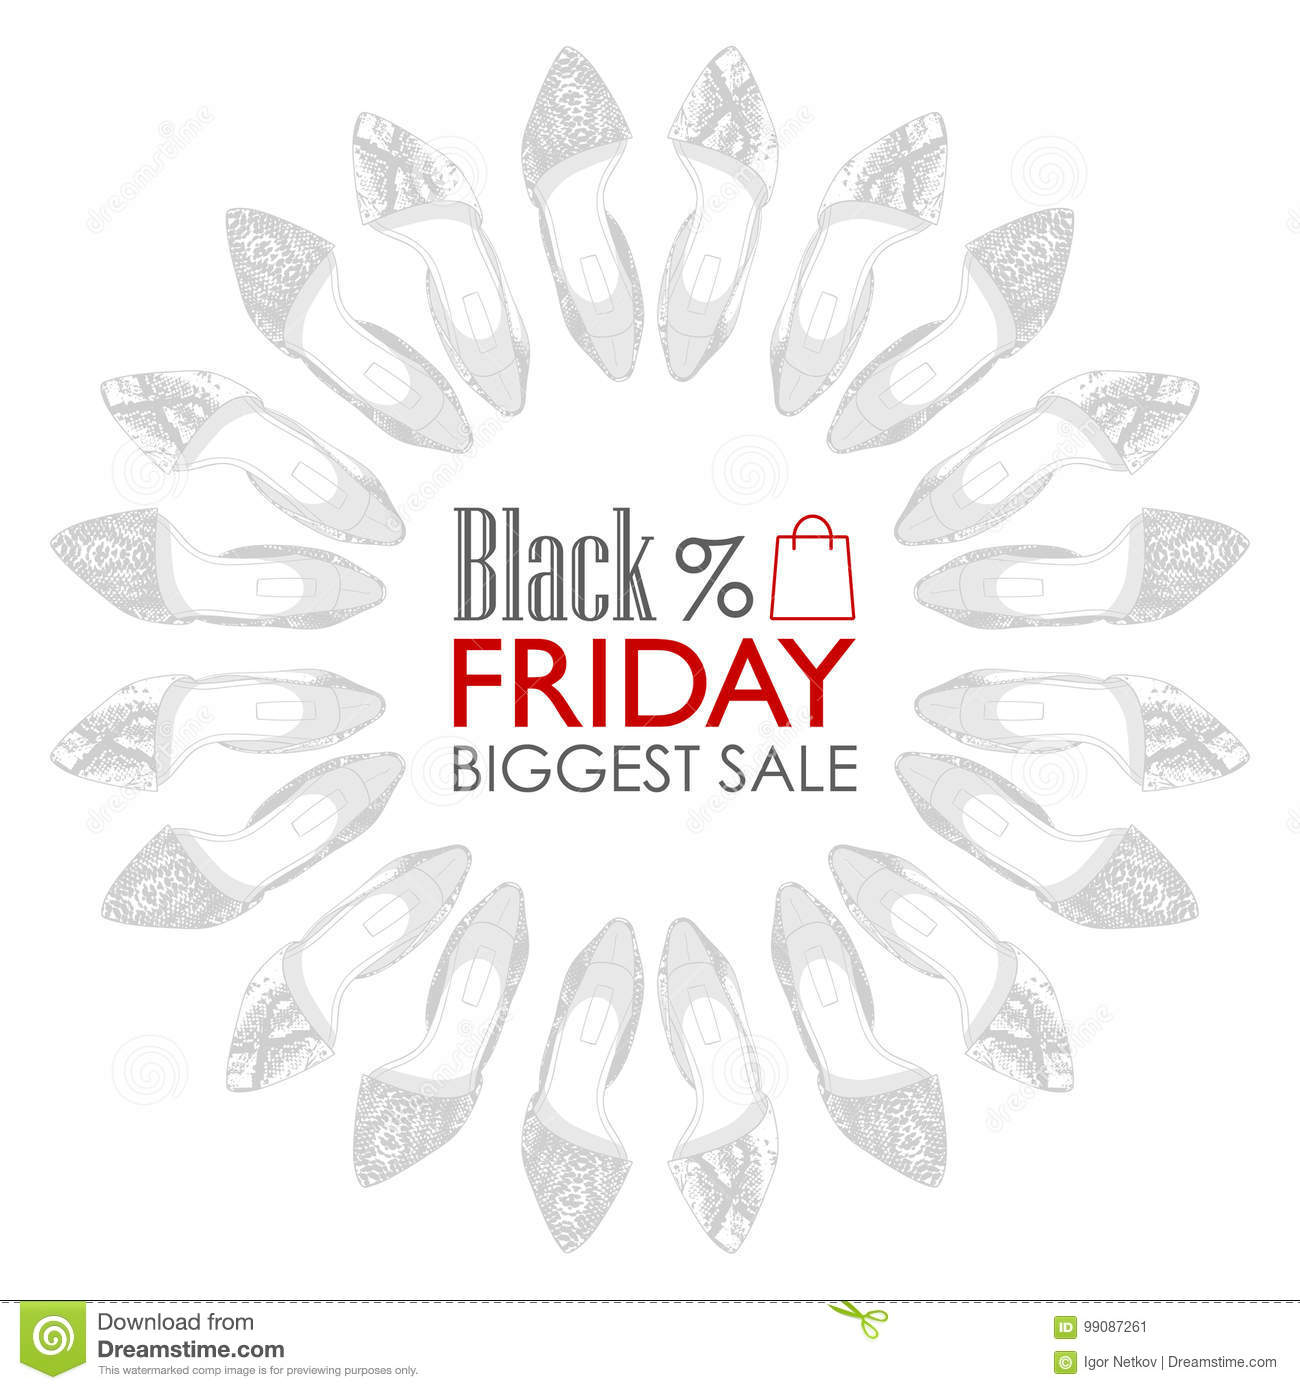 Black Friday Shoes Sale Stock Vector Illustration Of Beautiful 99087261